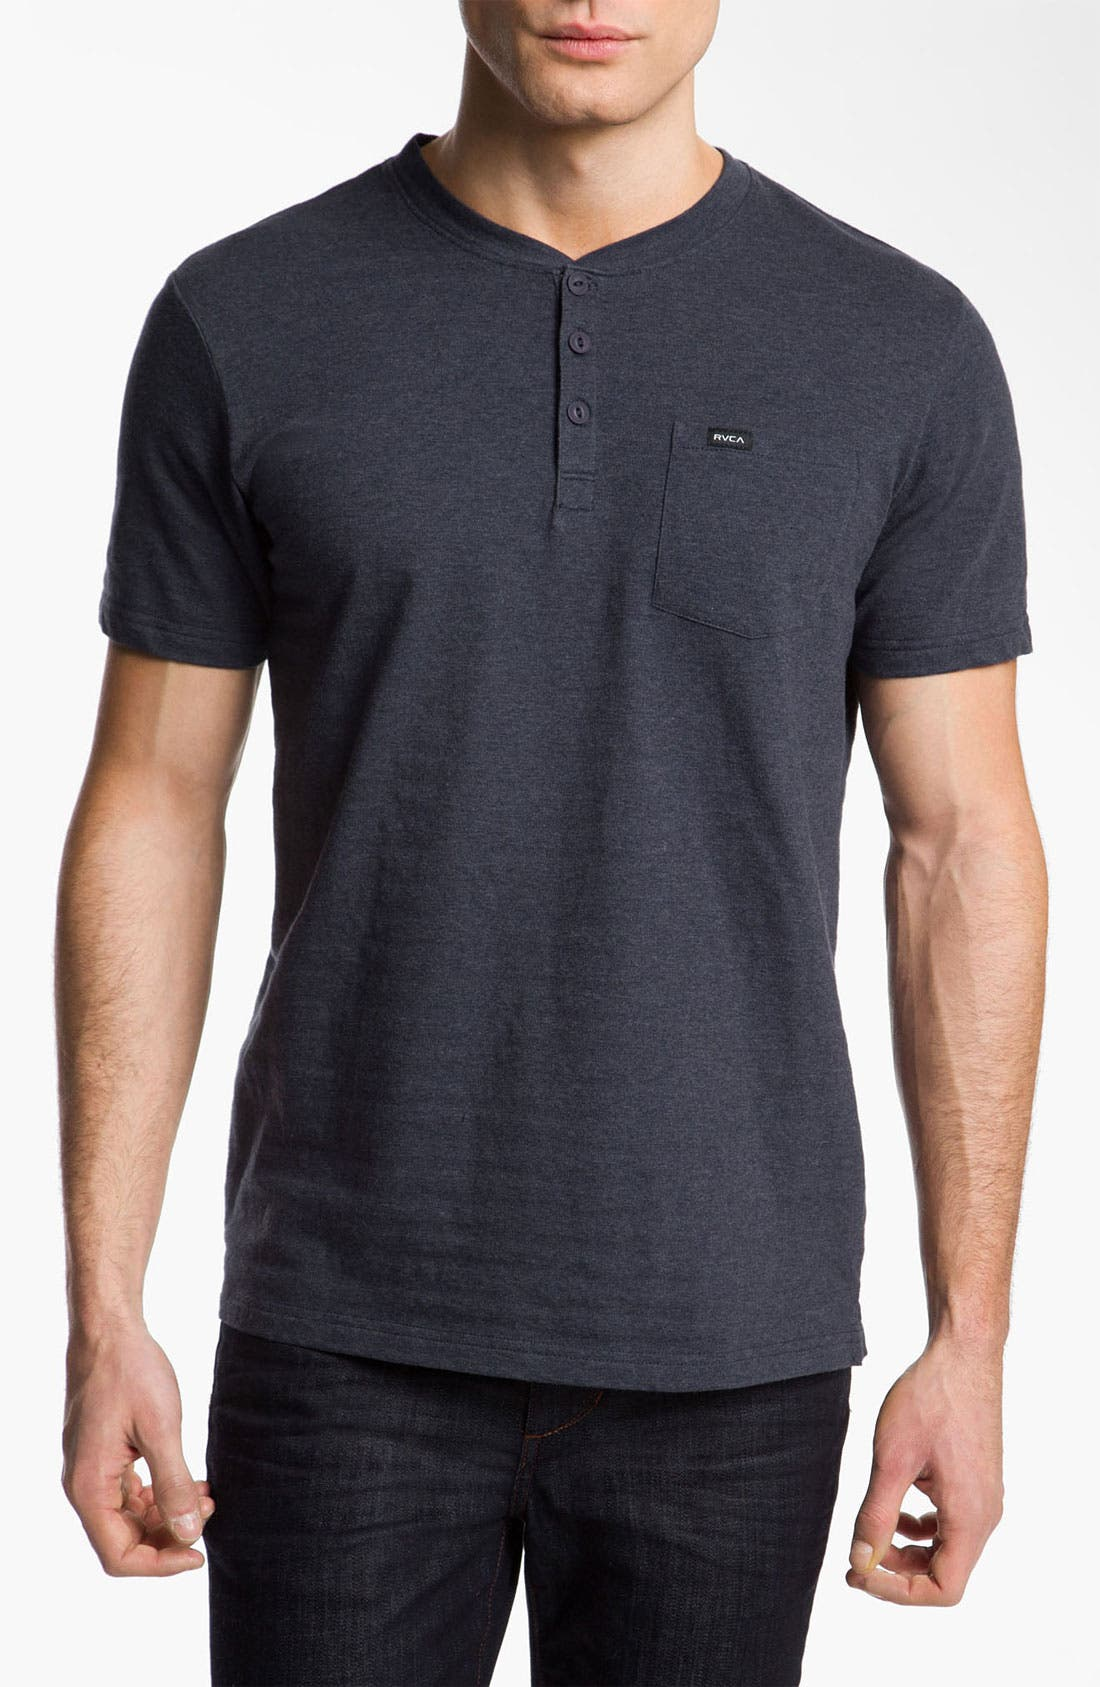 Alternate Image 1 Selected - RVCA 'Shopkeeper' Short Sleeve Henley T-Shirt